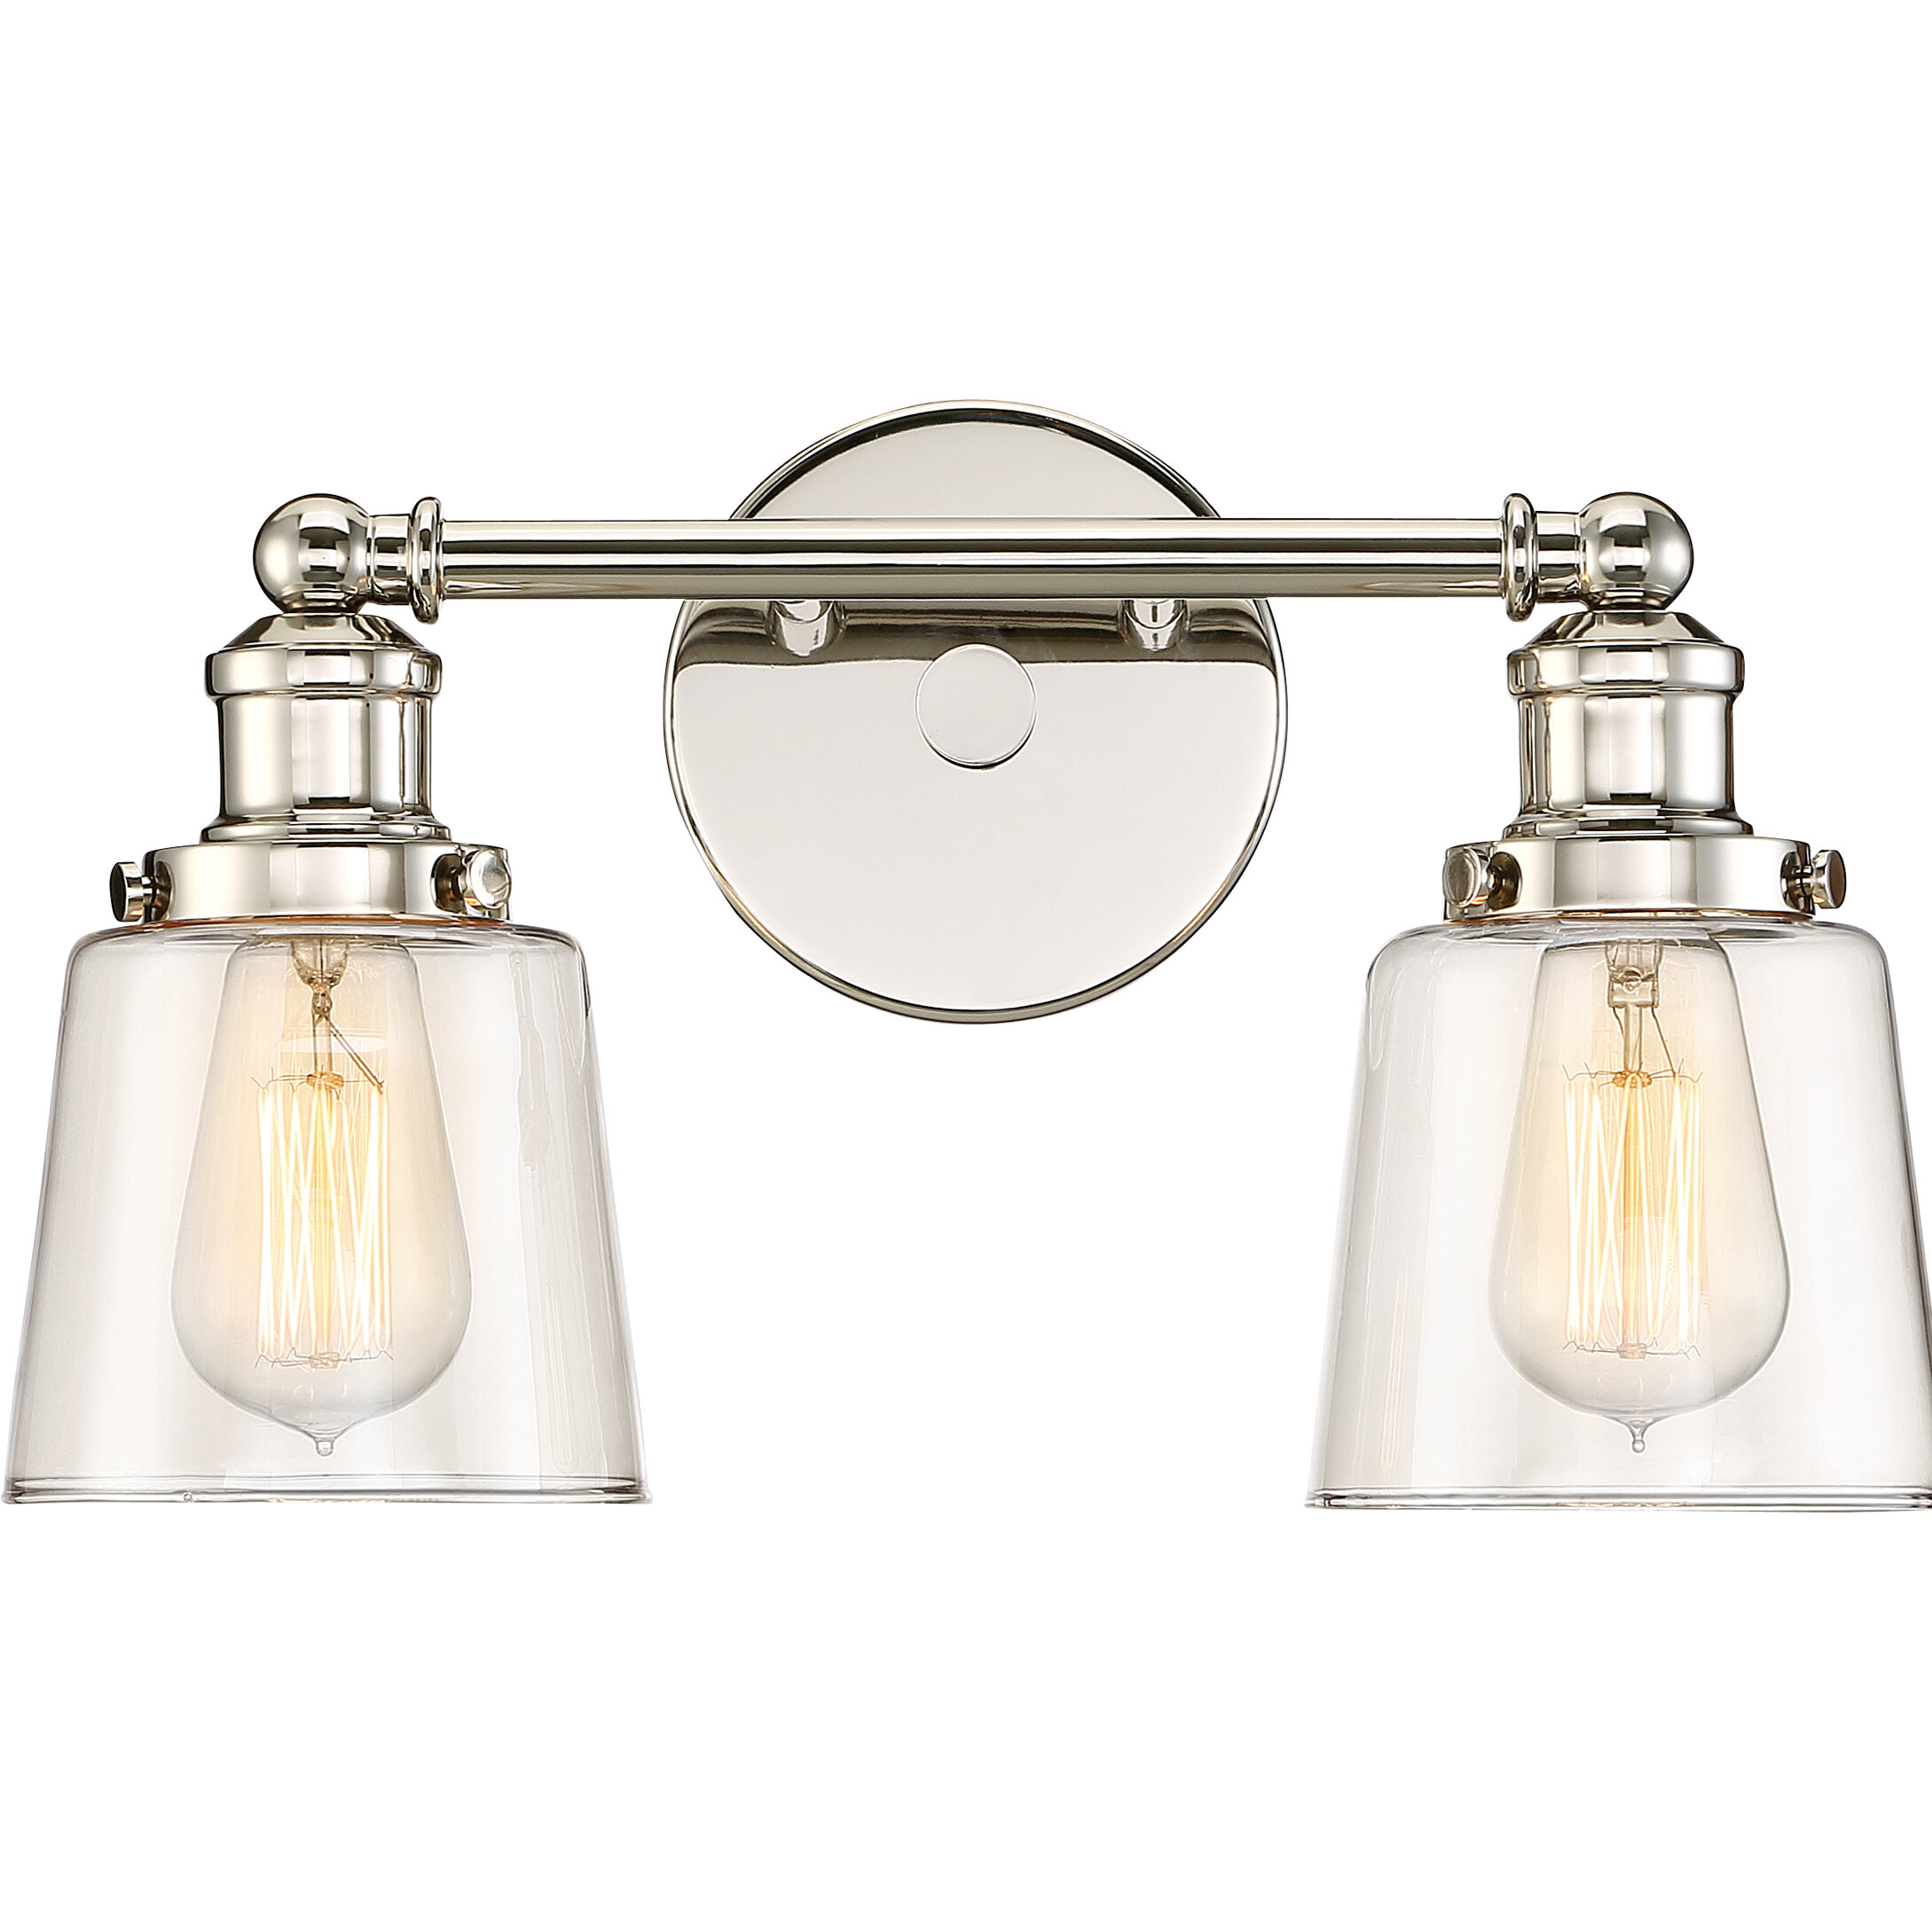 Beachcrest Home Sabbagh 2 Light Vanity Light Reviews Wayfair